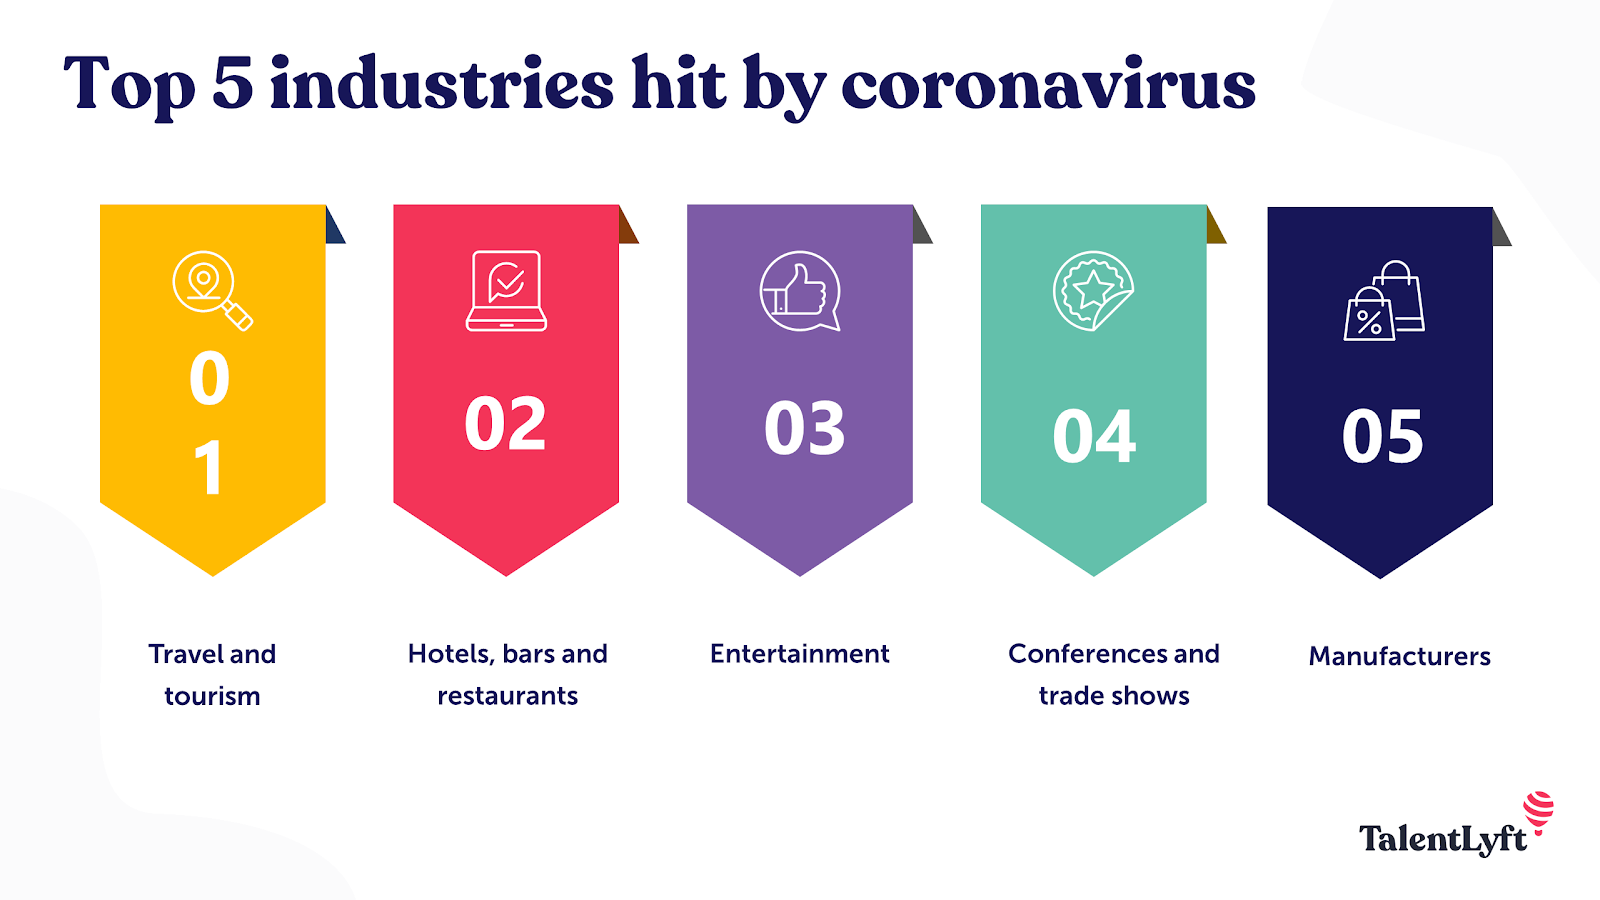 Industries most severely affected by COVID-19